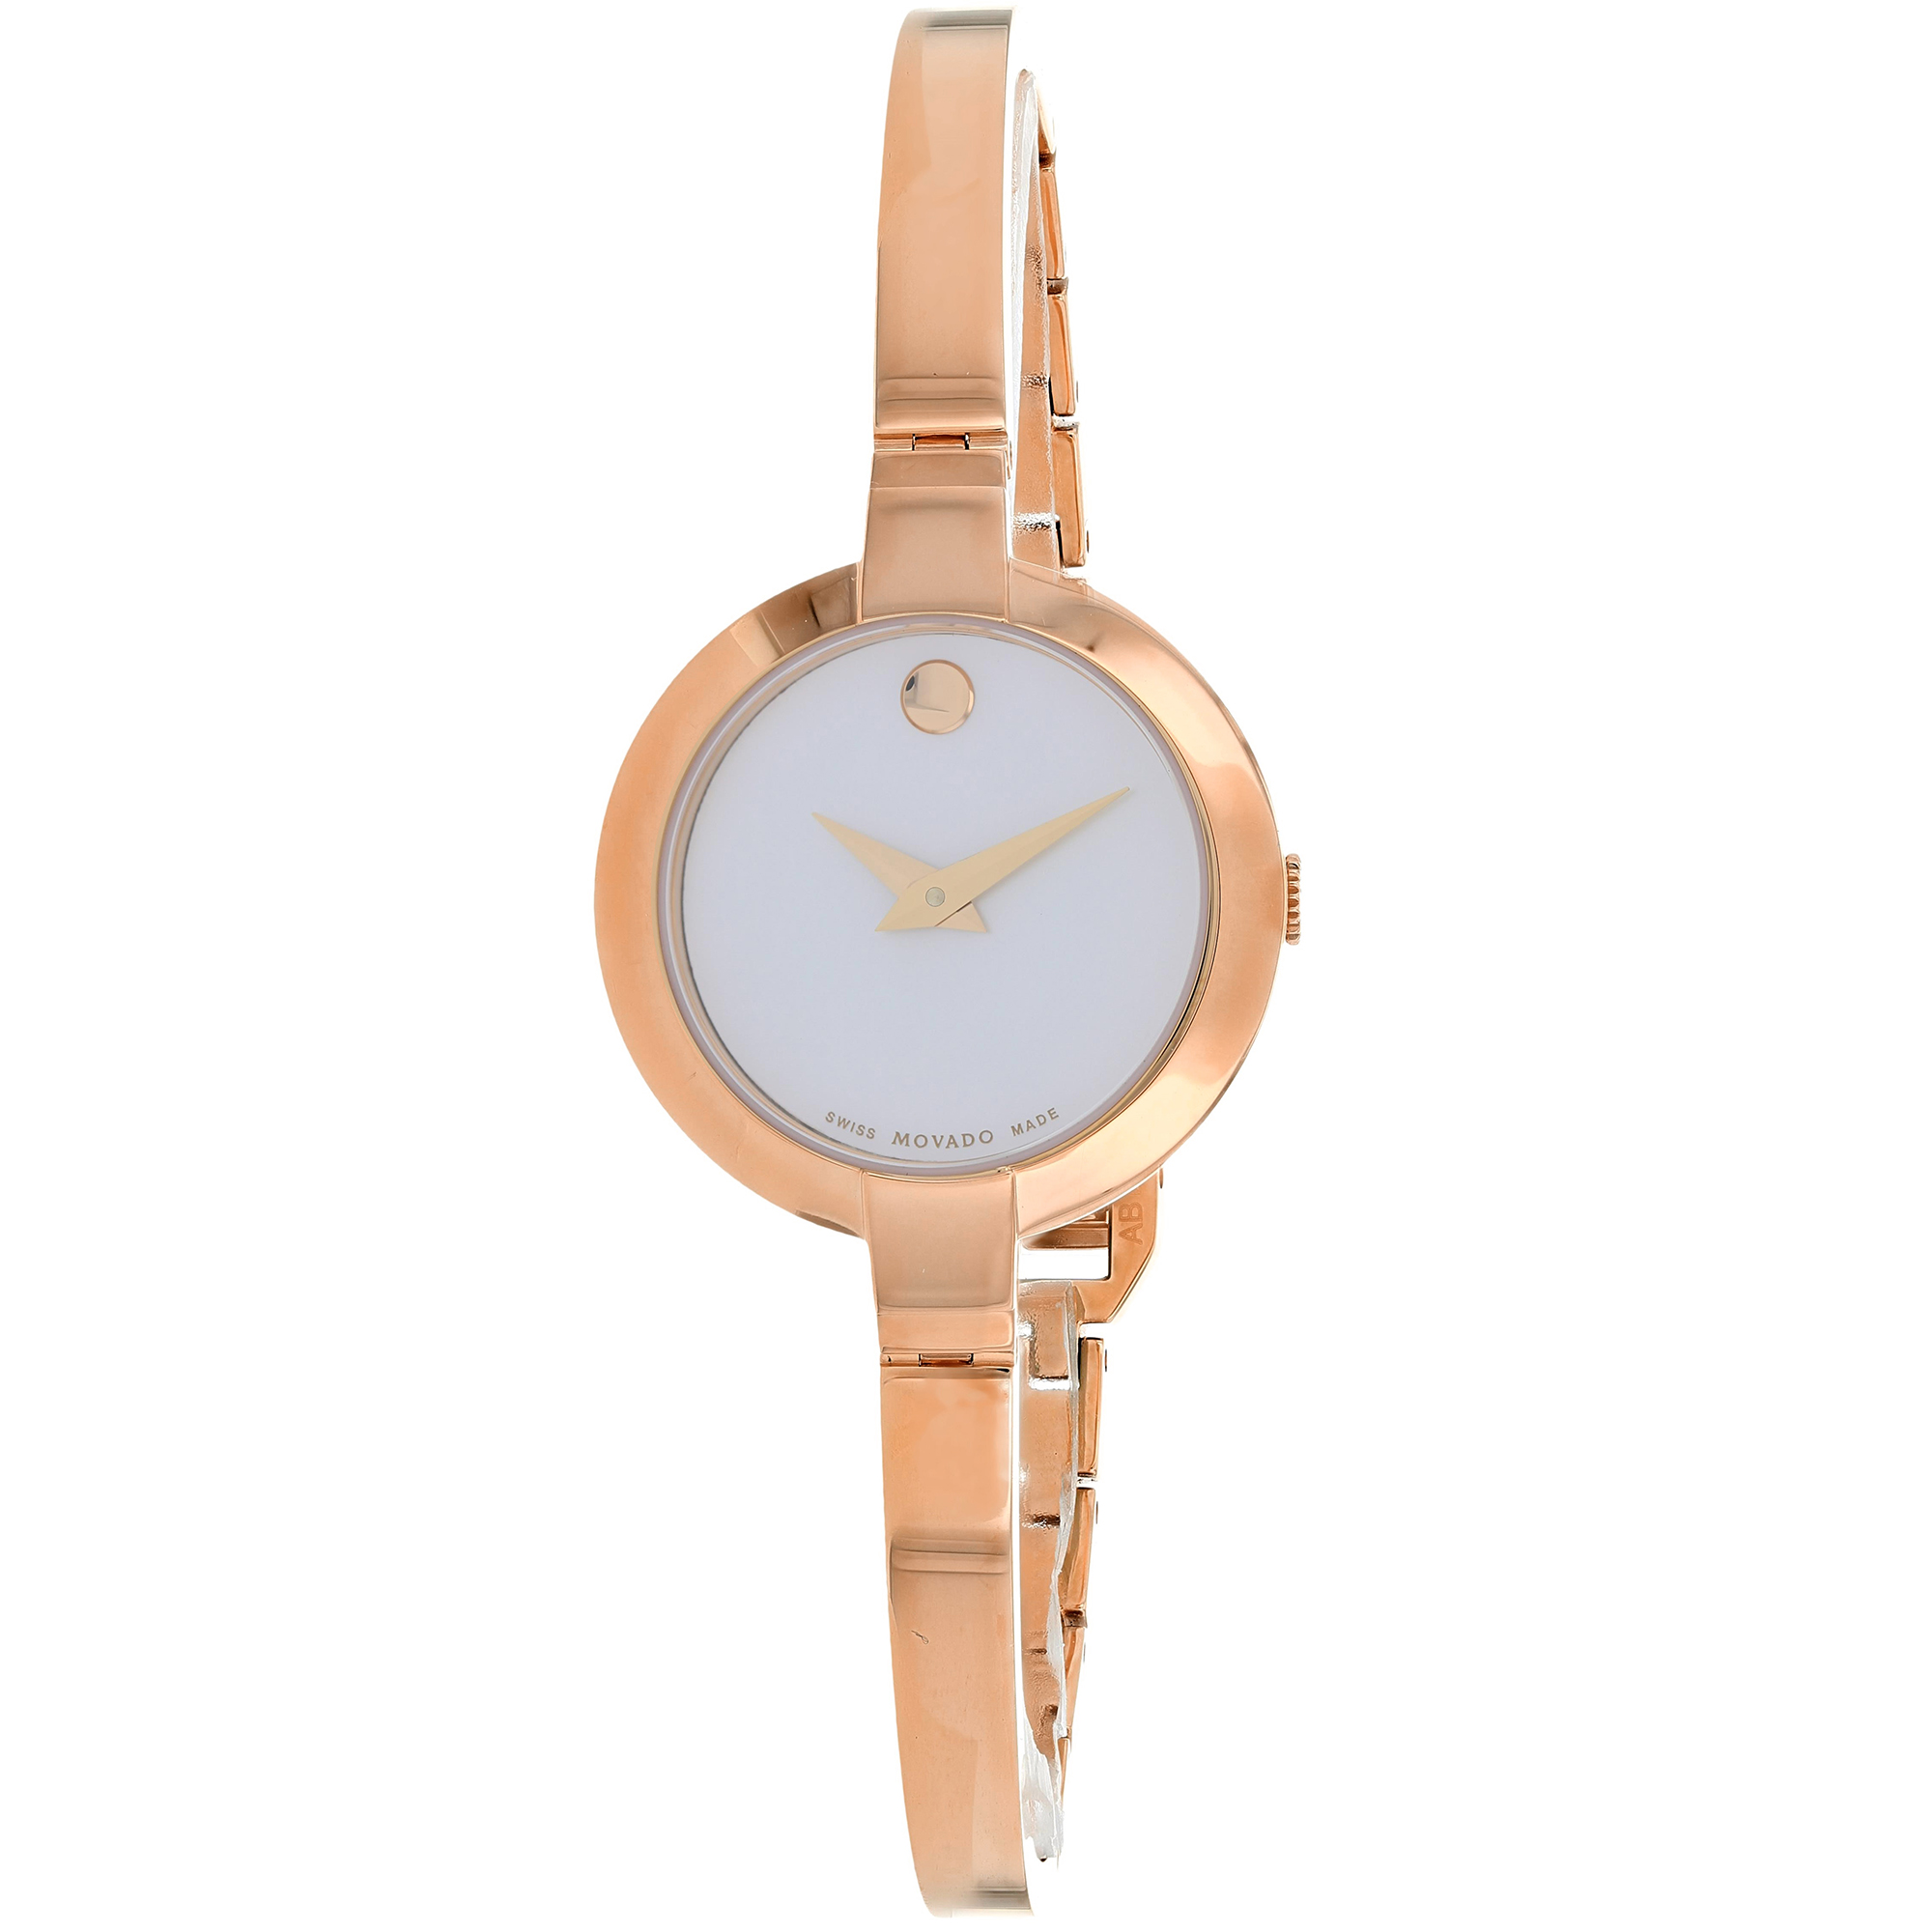 Bella Watch by Movado